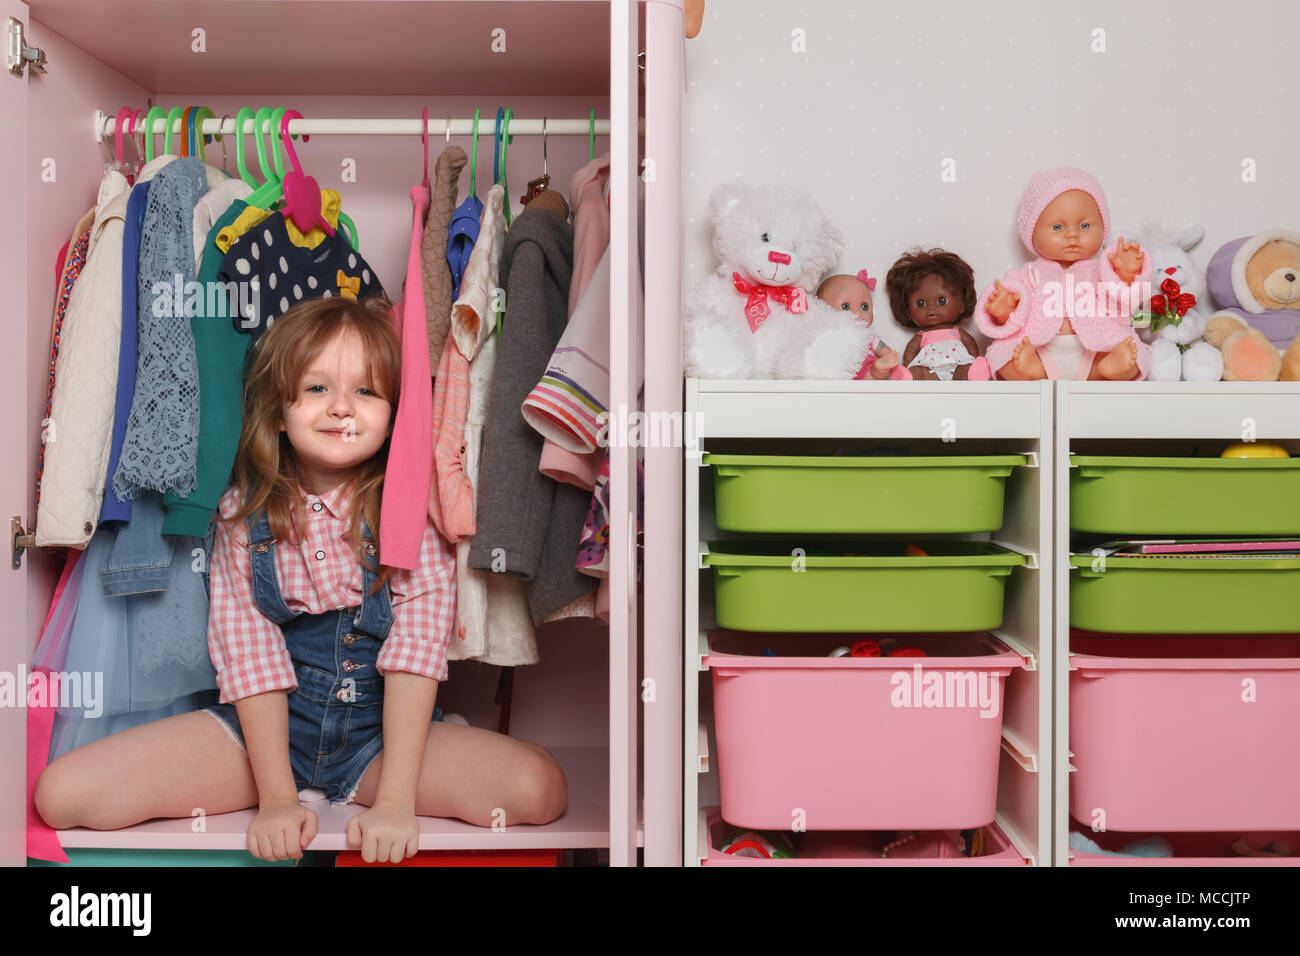 A little girl is sitting in a closet with a children's department. Storage system for children's things and toys - Stock Image